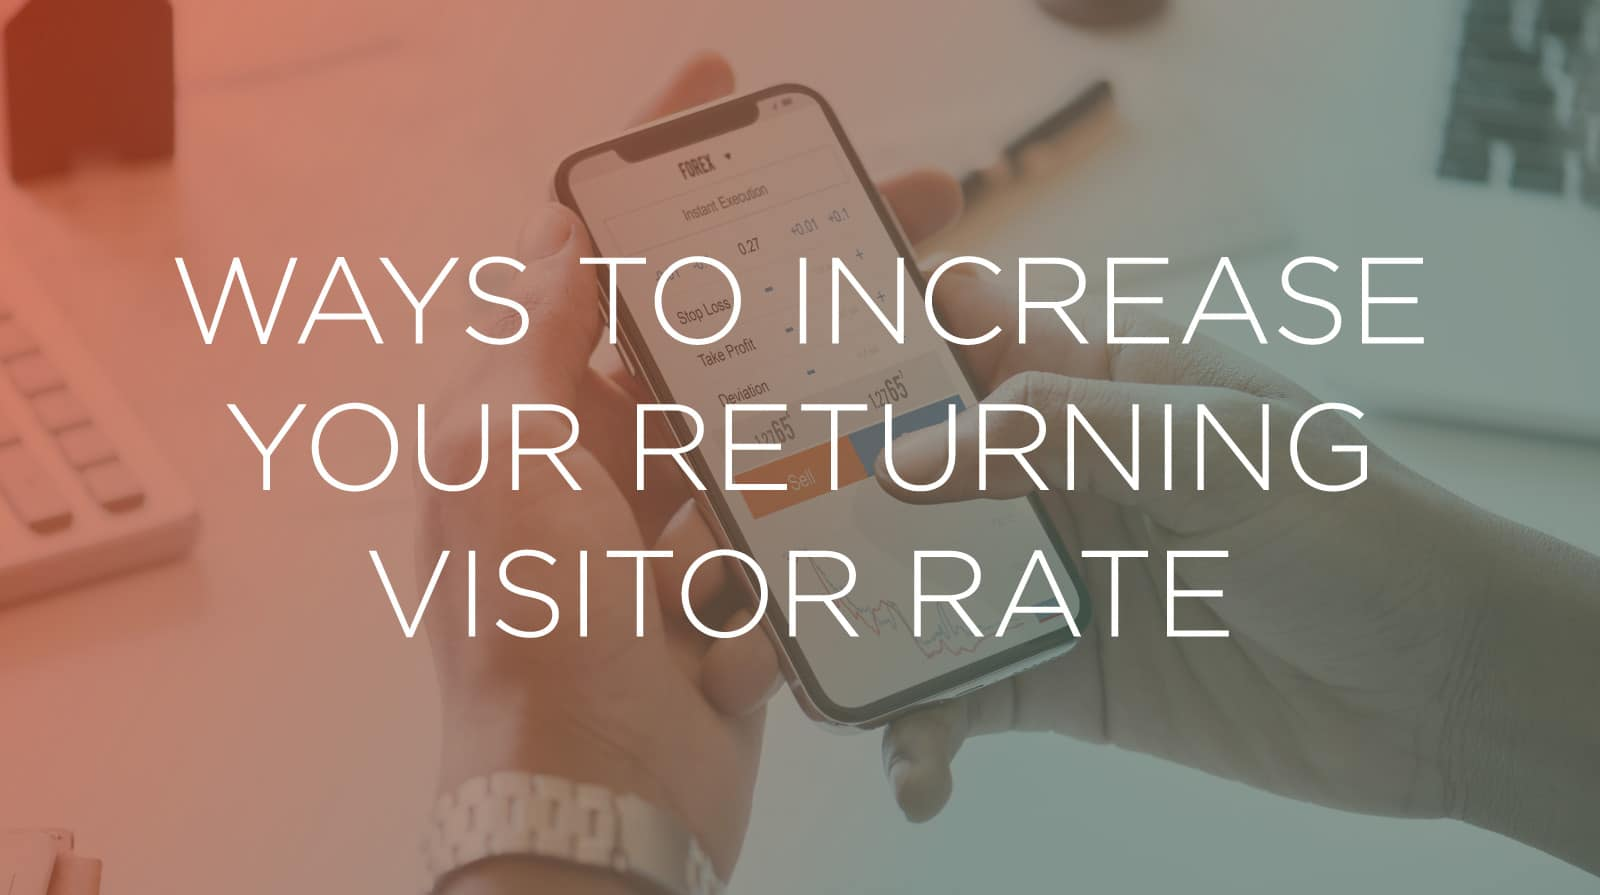 Ways to Increase Your Returning Visitor Rate